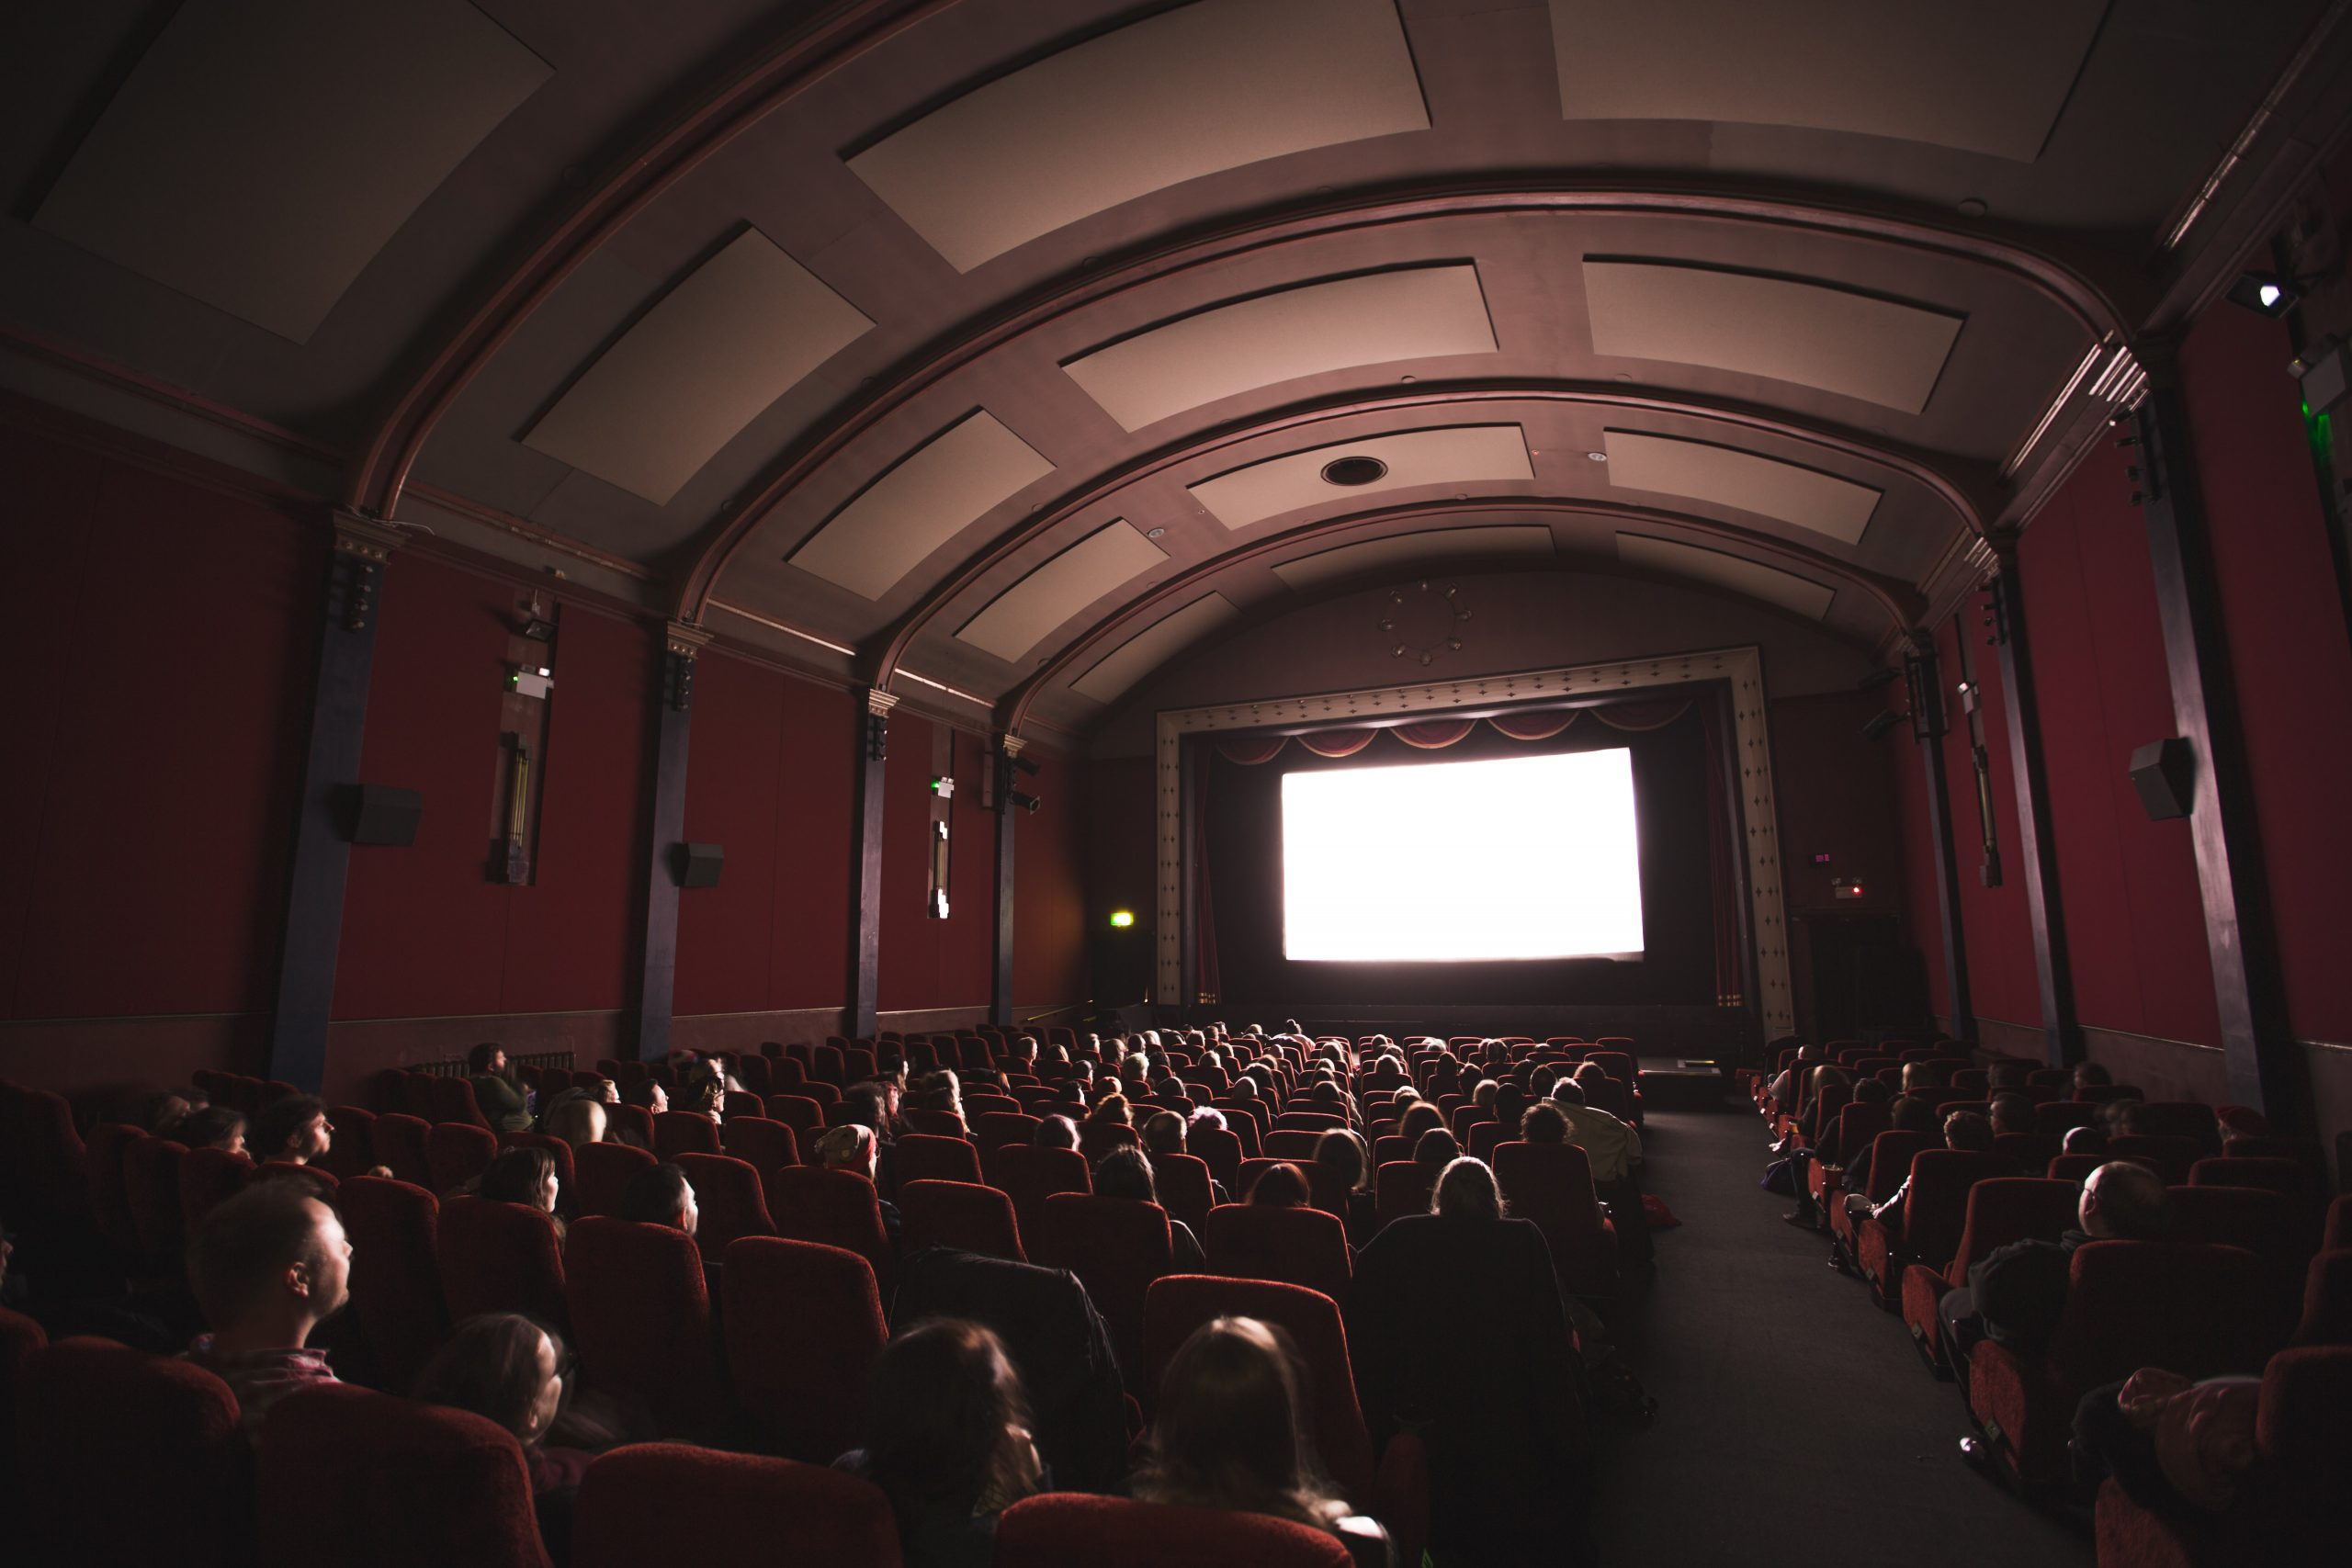 Filmmakers from the Multiplex Association of India urge the government to reopen cinemas